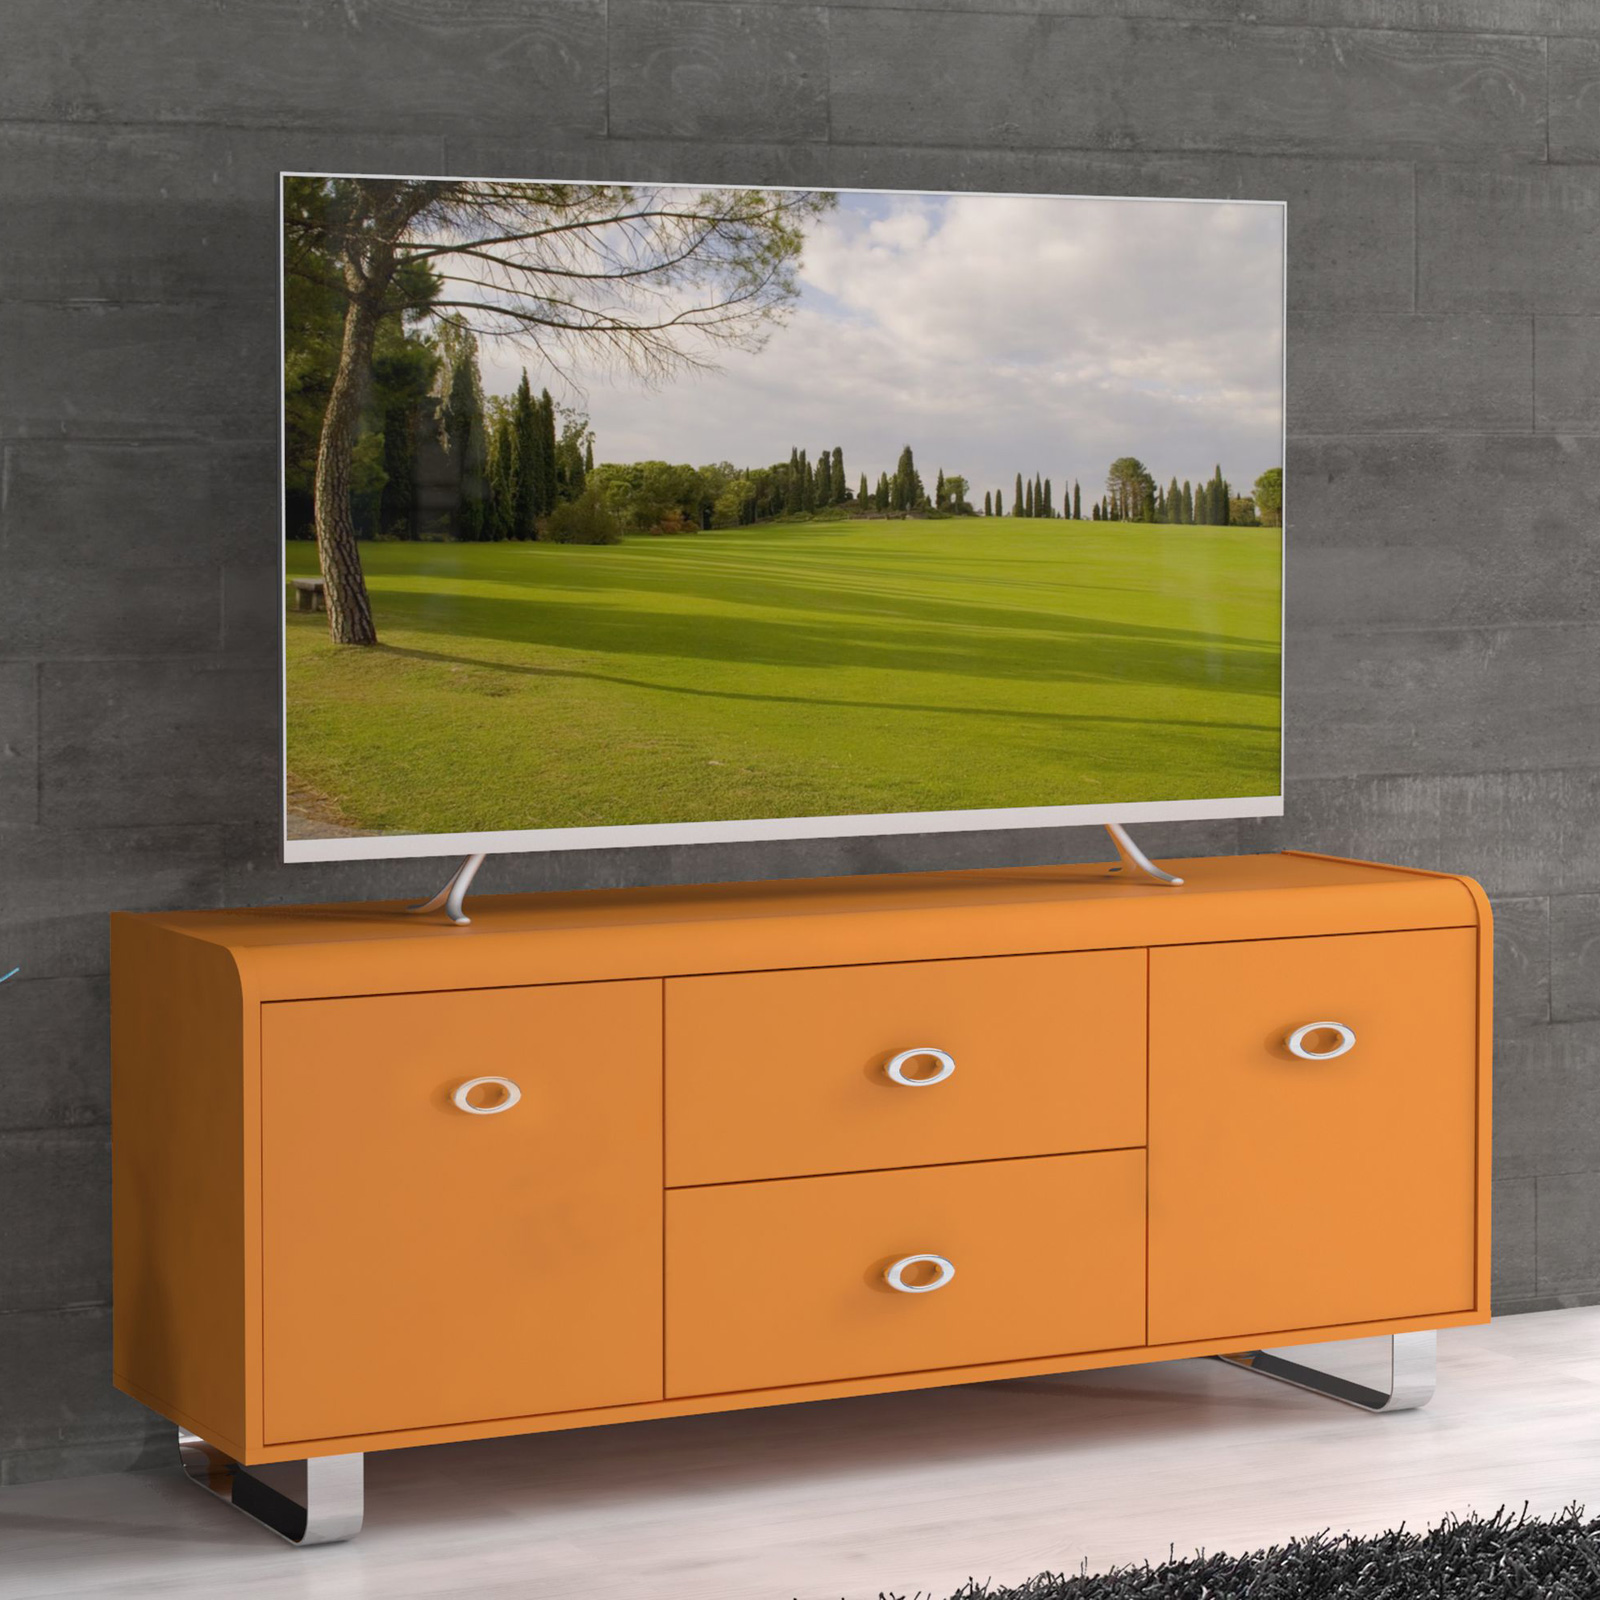 tv unterschrank gipsy kommode sideboard in orange blau rot. Black Bedroom Furniture Sets. Home Design Ideas